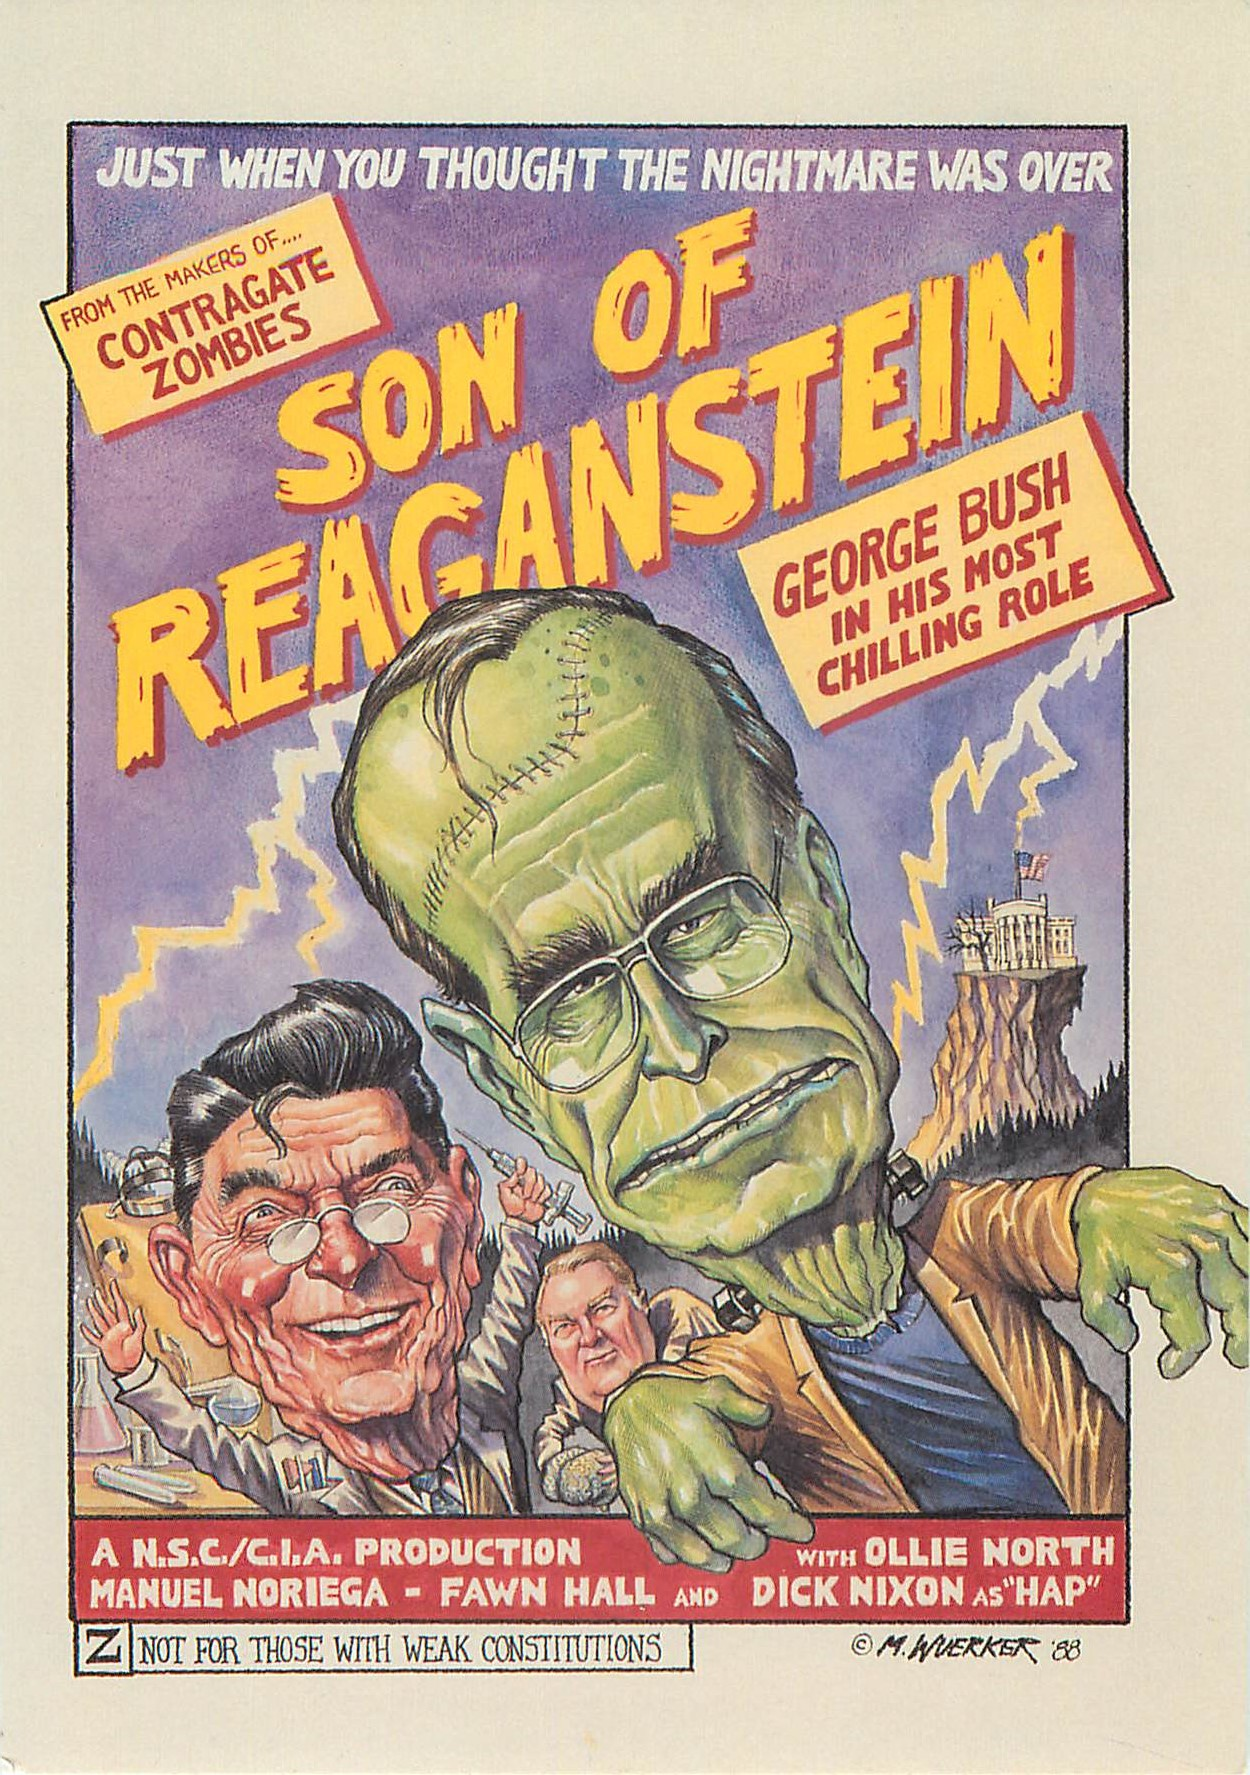 """Son of Reaganstein"""